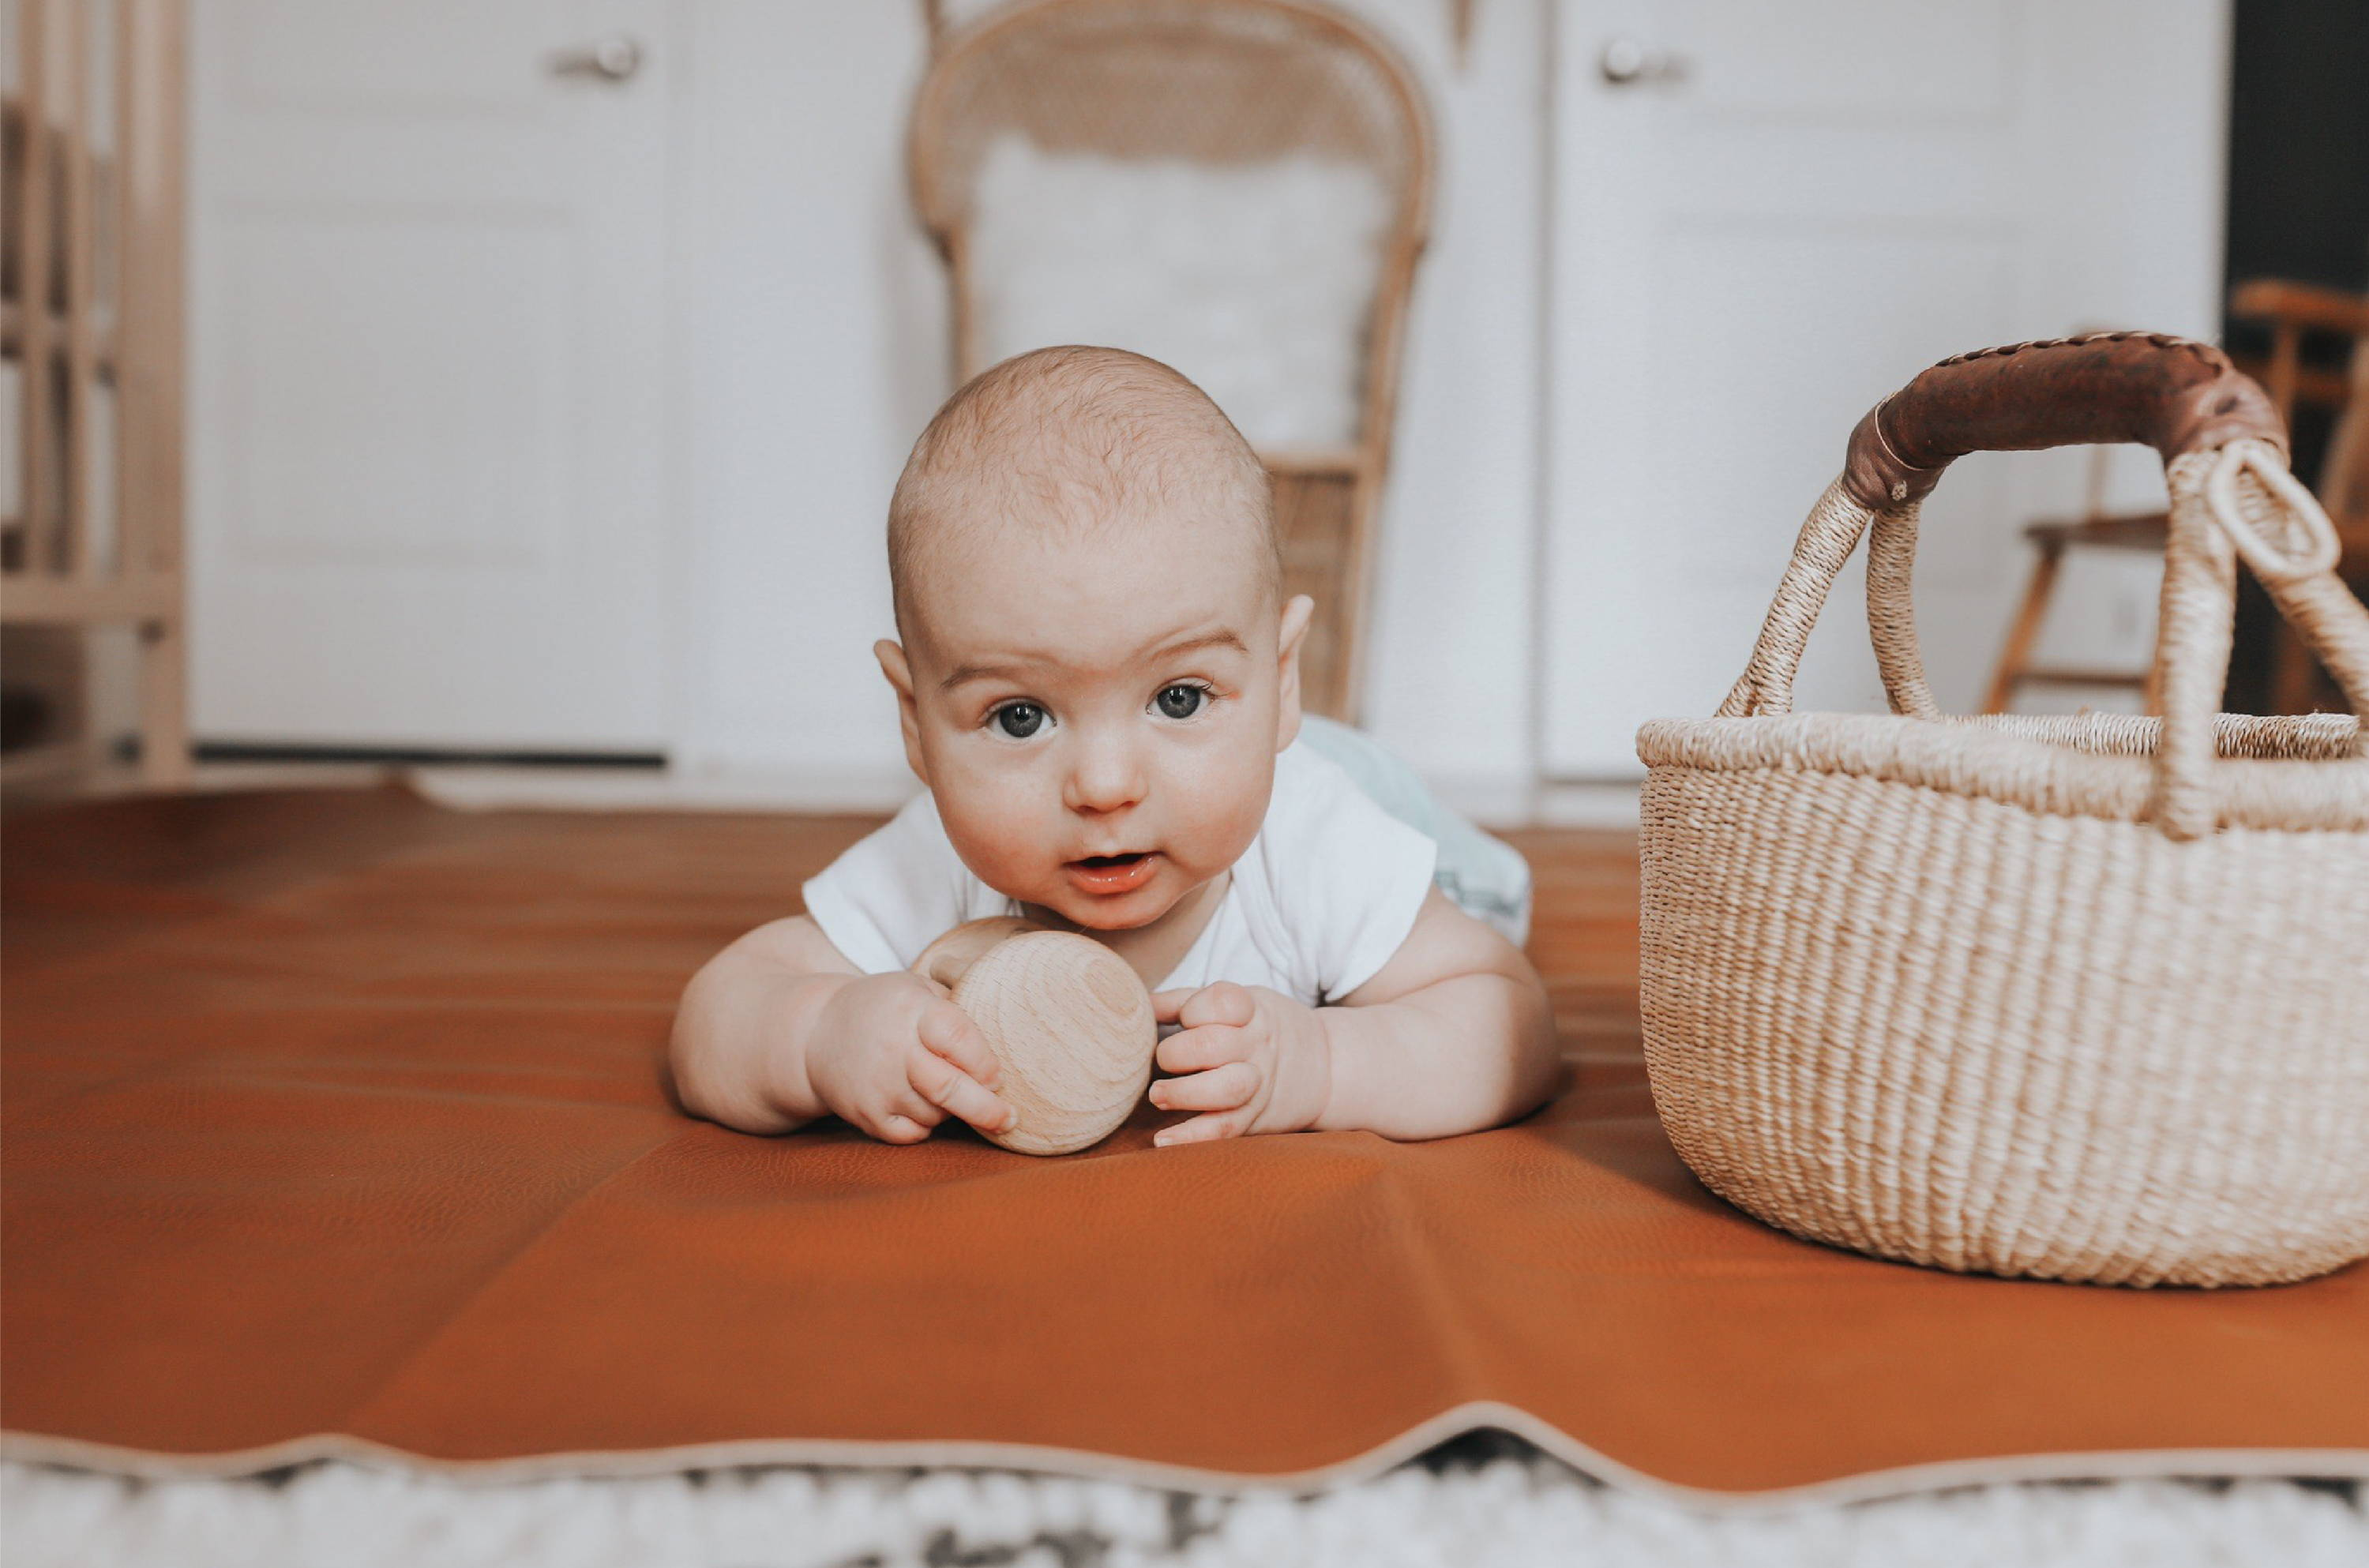 Baby playing on ginger leather mat